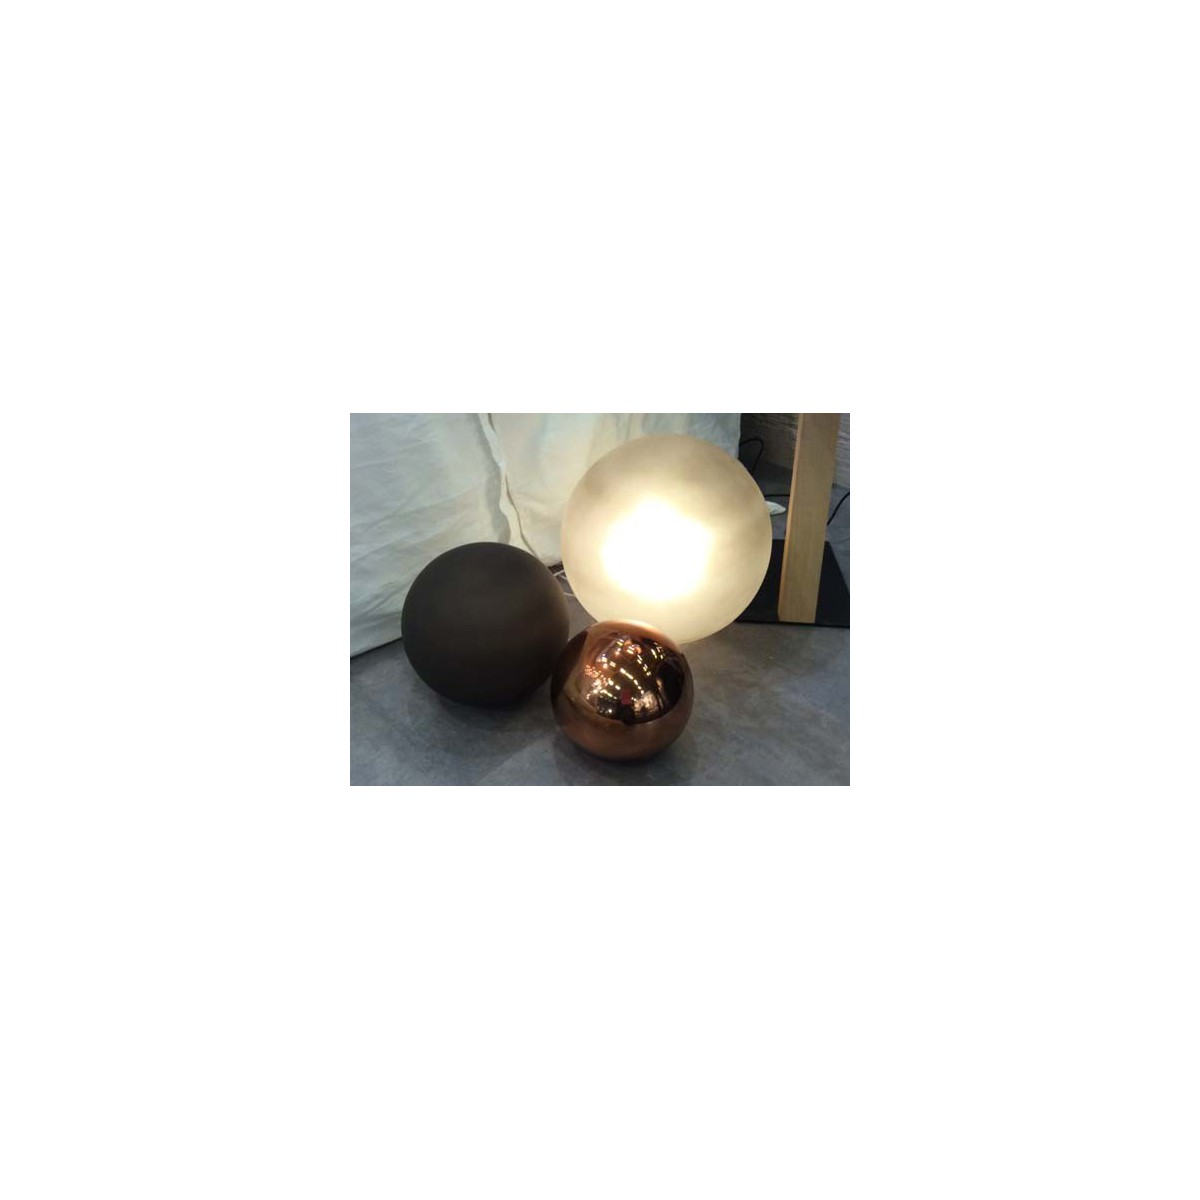 lampe d 39 ambiance boule en verre souffl par angel des. Black Bedroom Furniture Sets. Home Design Ideas